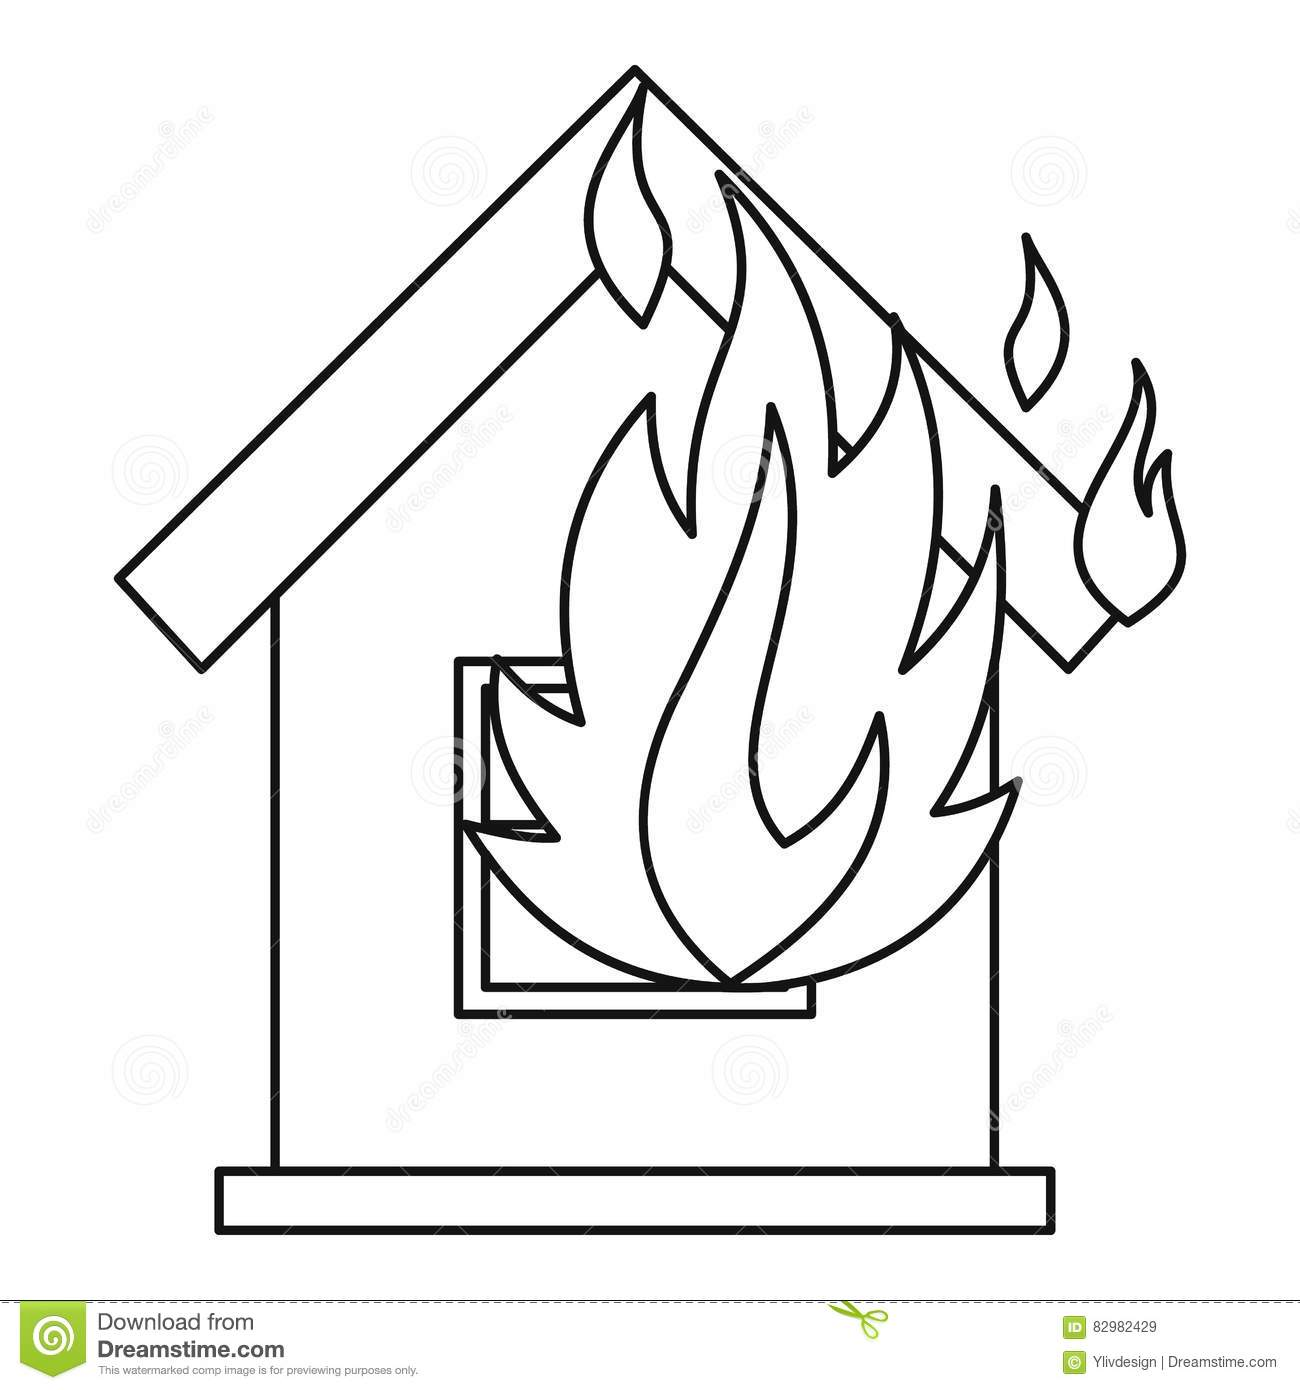 Coloring house on fire drawing